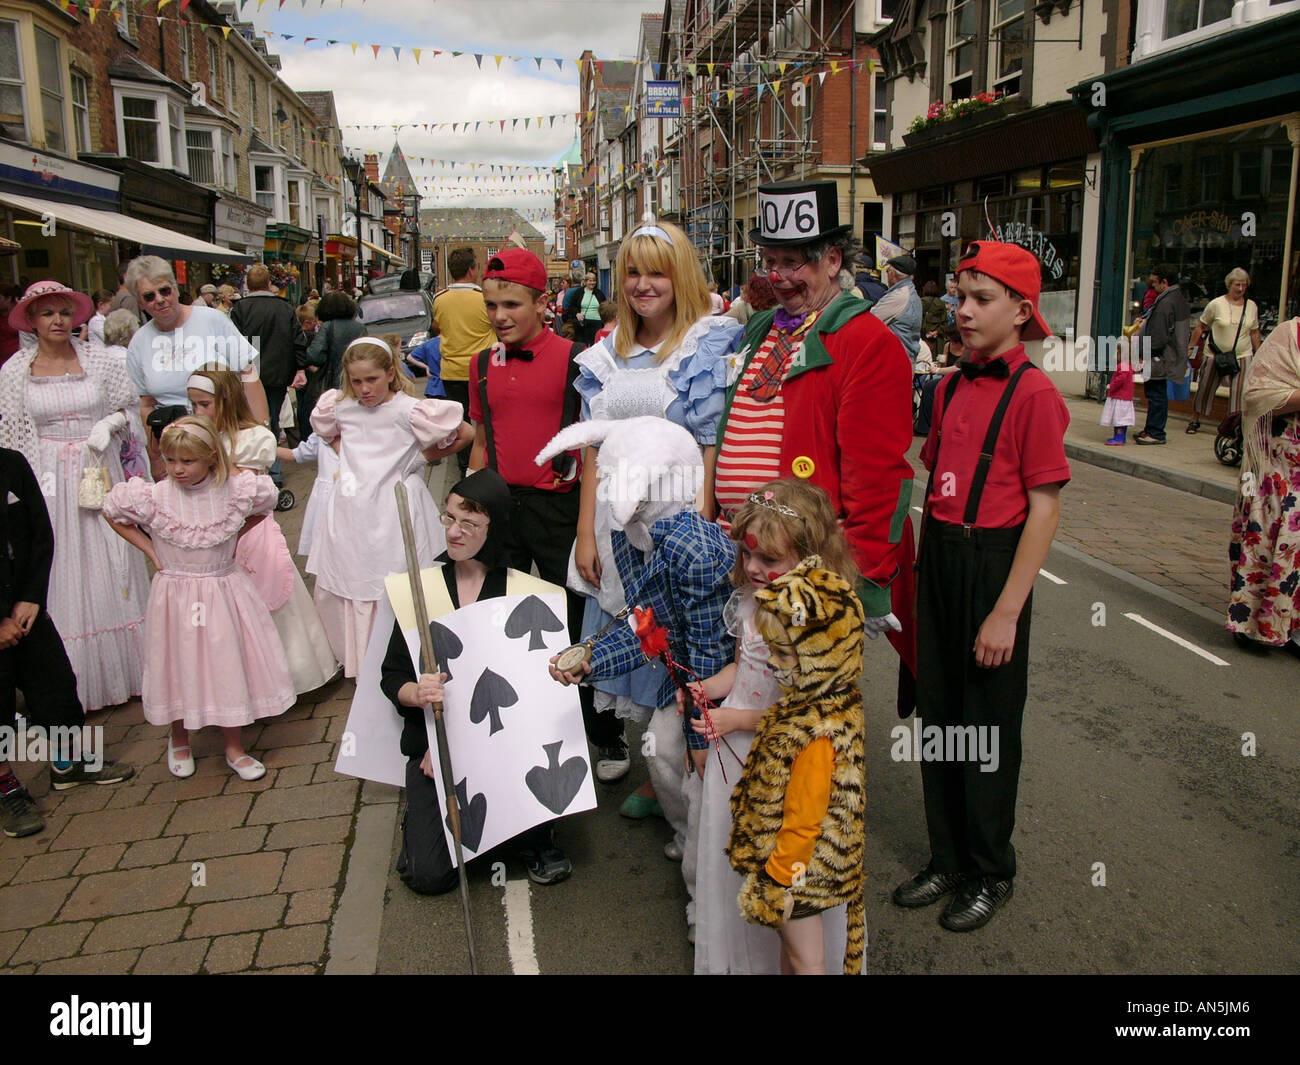 Llandrindod Wells victorian festival Powys Wales - alice in wonderland characters awaiting judging at the end of the parade - Stock Image